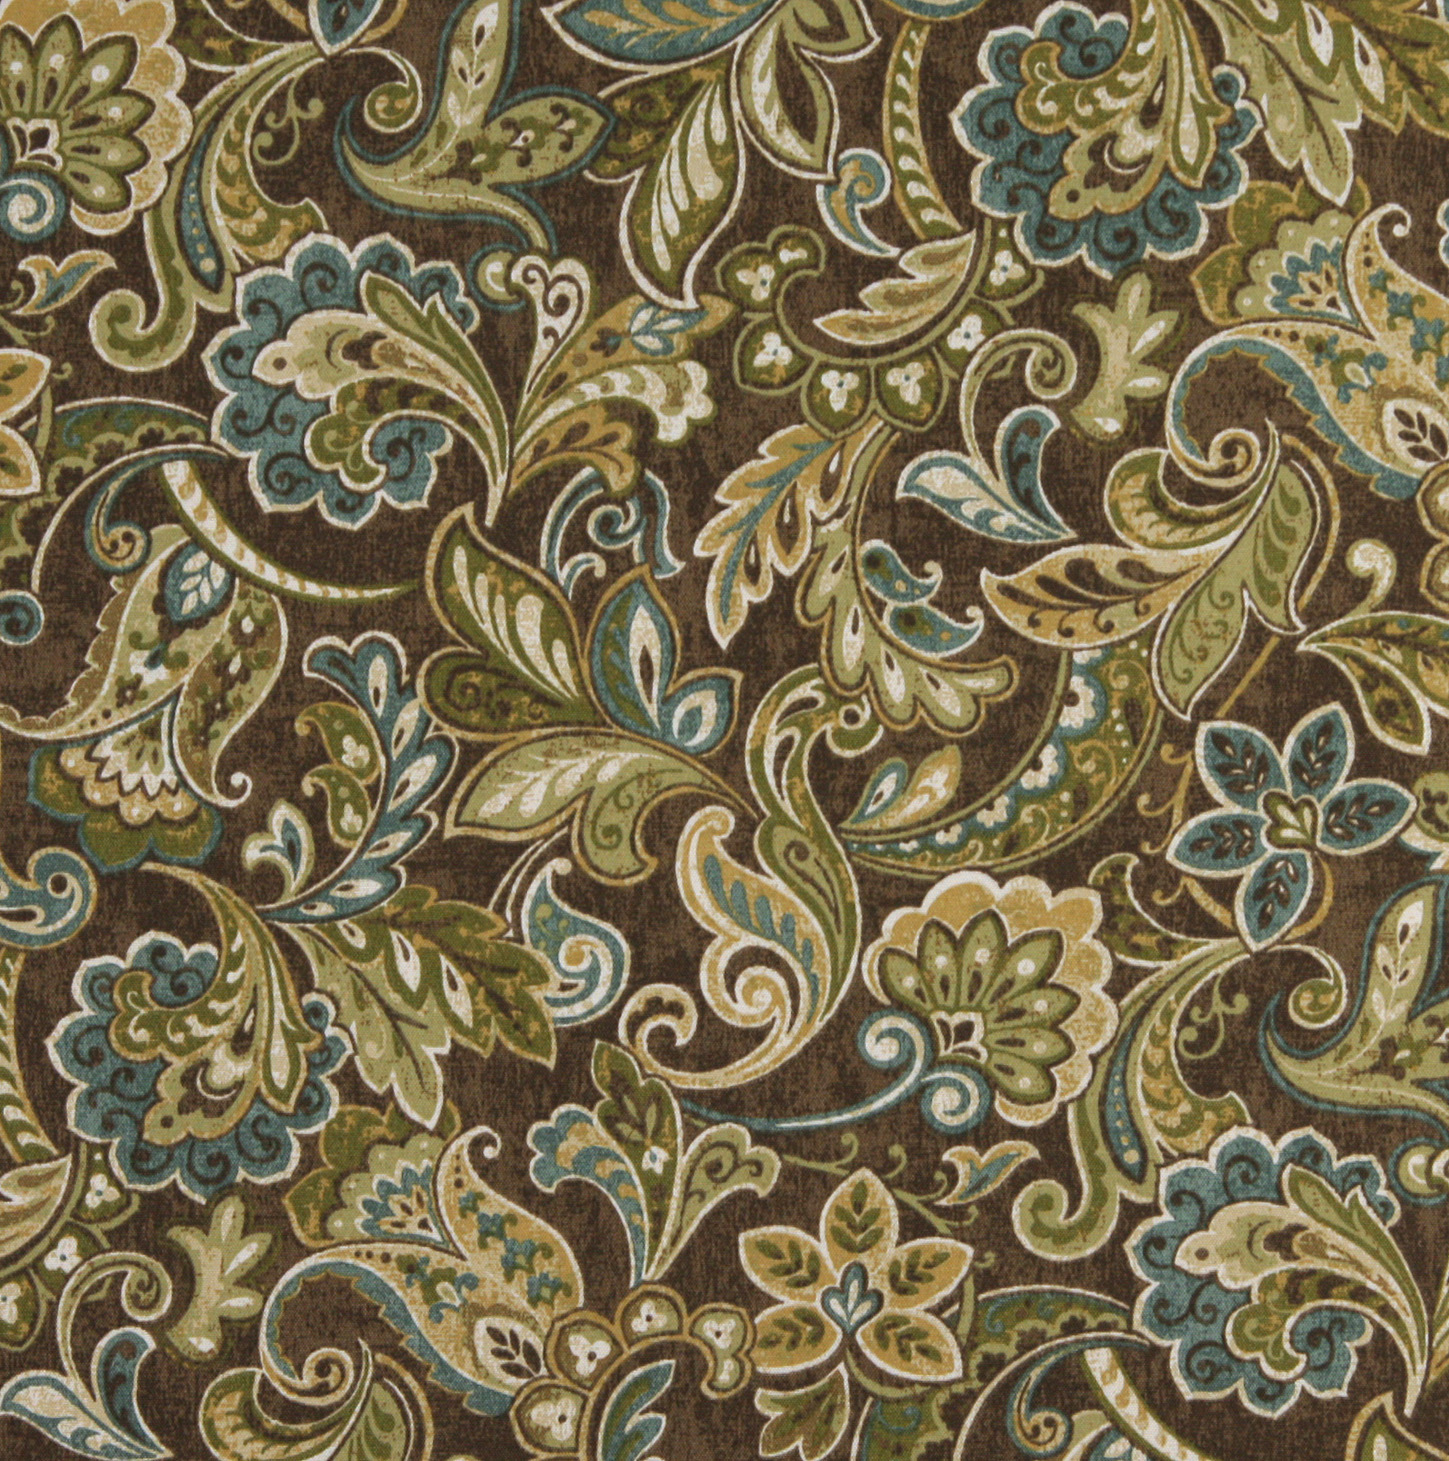 Black And Silver Floral Wallpaper Mocha Aqua And Beige Large Floral Paisley Upholstery Fabric